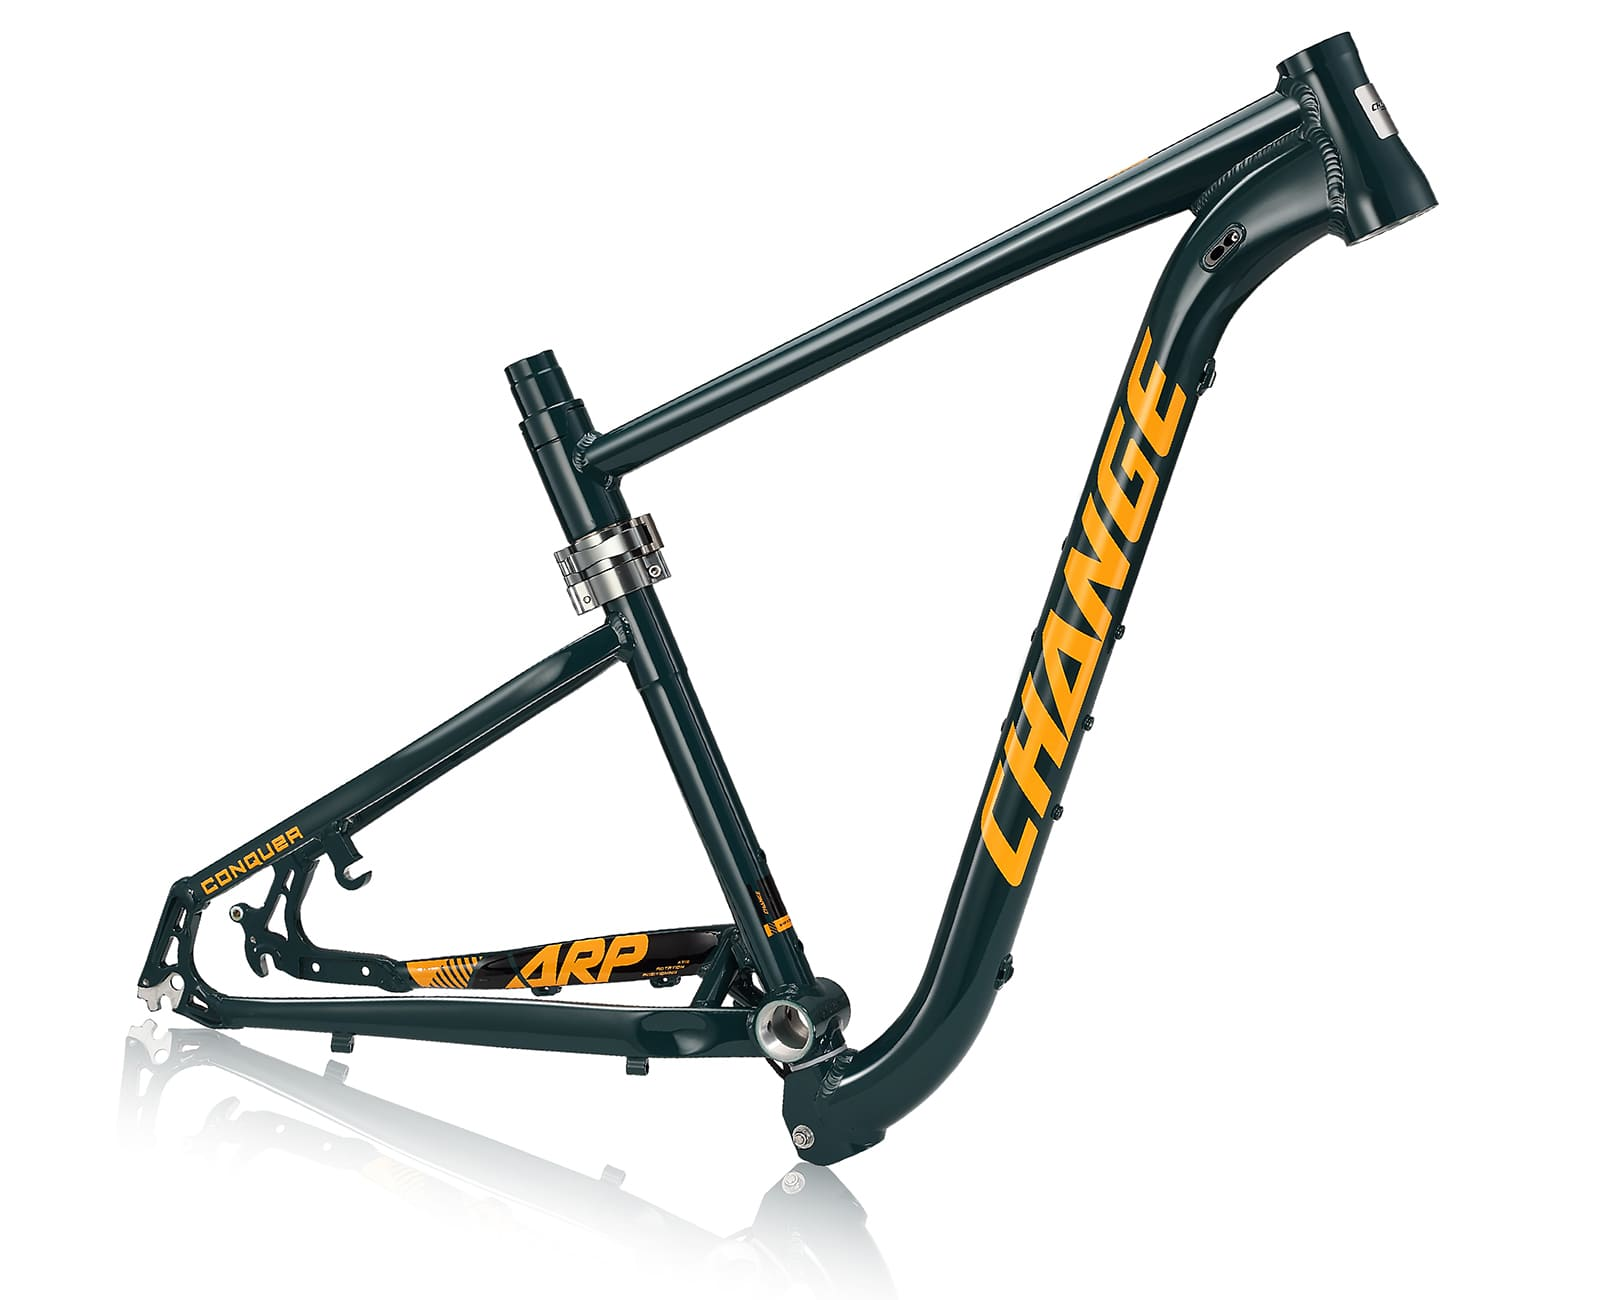 27.5 mtb folding frame changebike df-833g